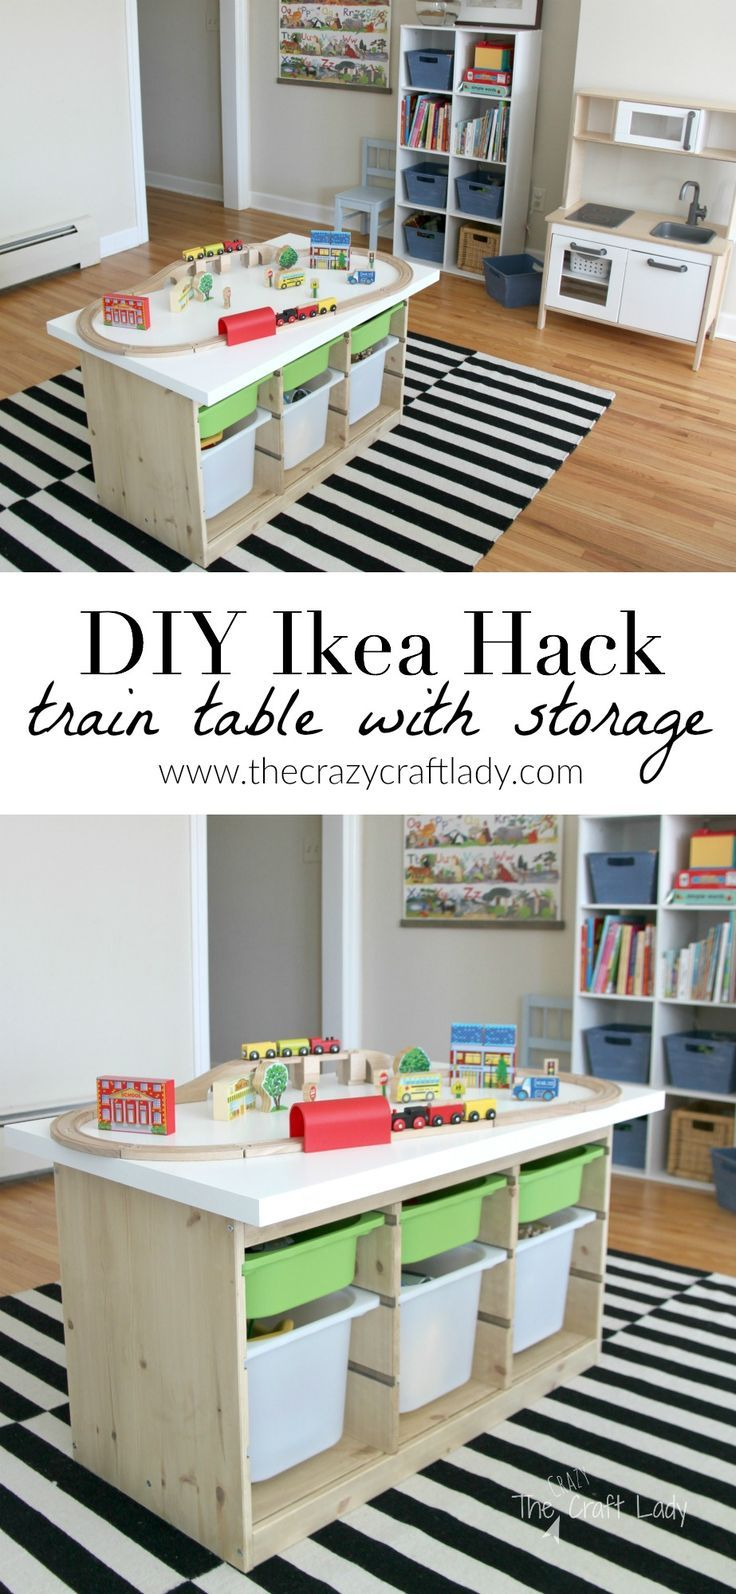 An Ikea Hack custom train and activity table with TONS of storage.  This is such an an EASY DIY project and a great way to get all of those toys up off the floor and organized once and for all!